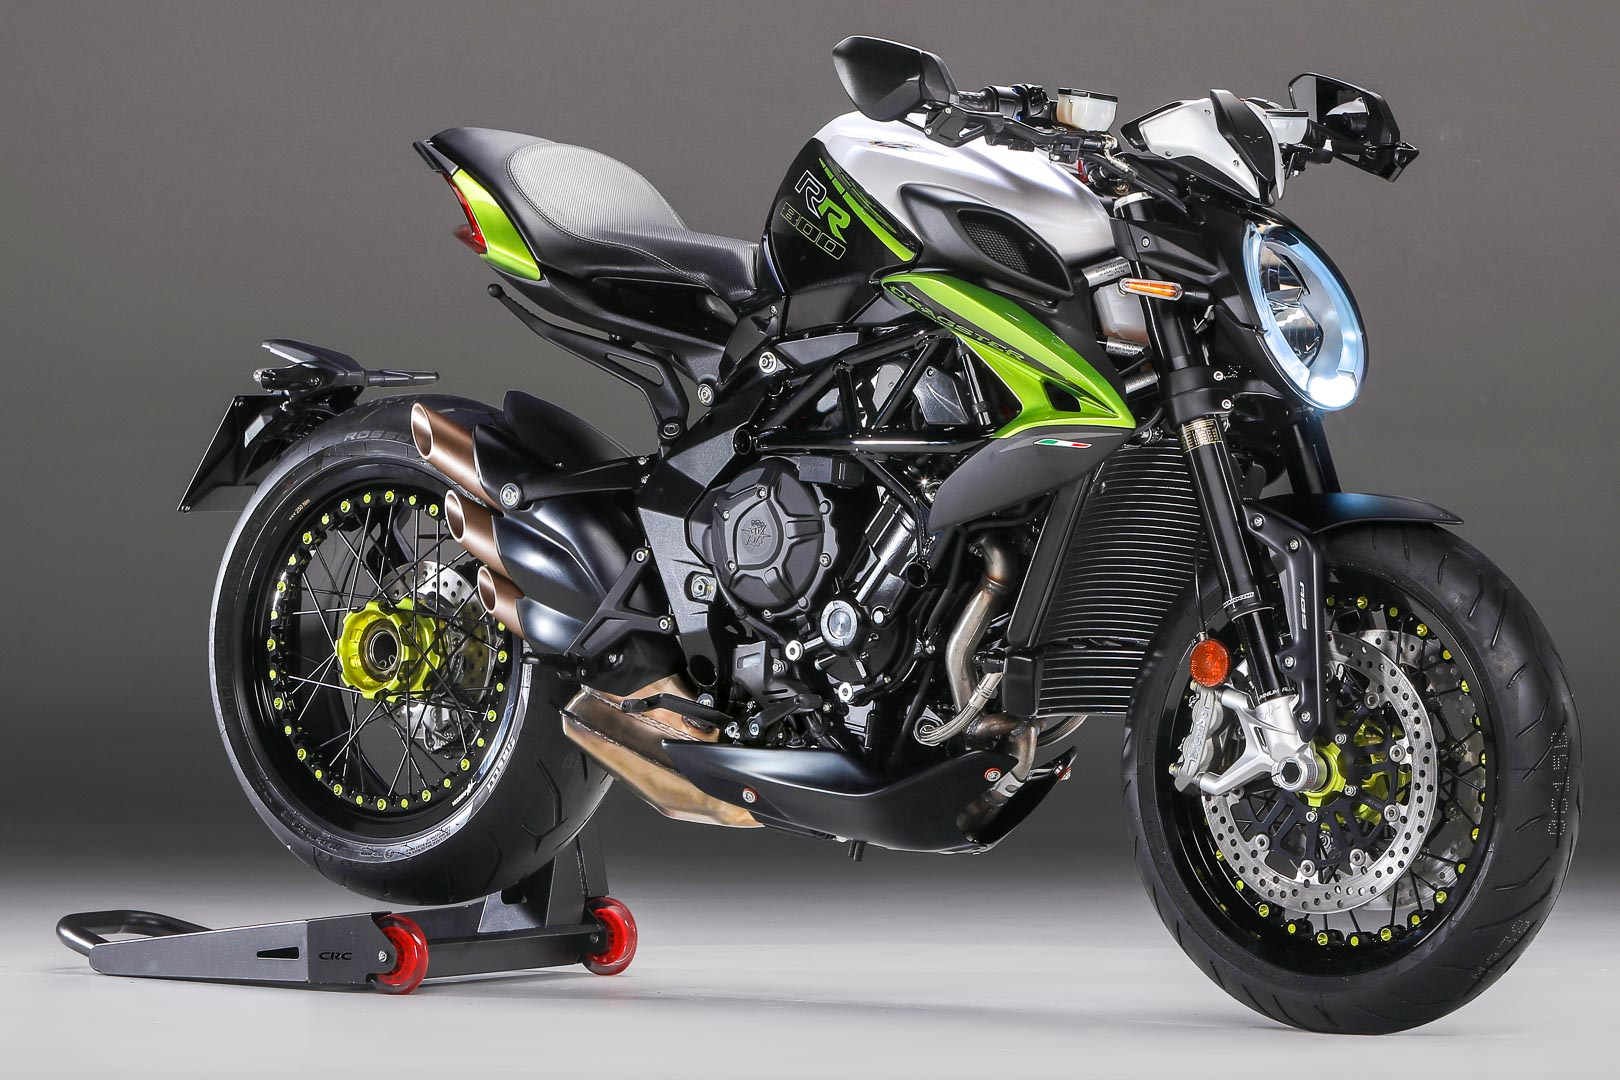 Luxury Muscle: The Limited Edition MV Agusta Rush 1000